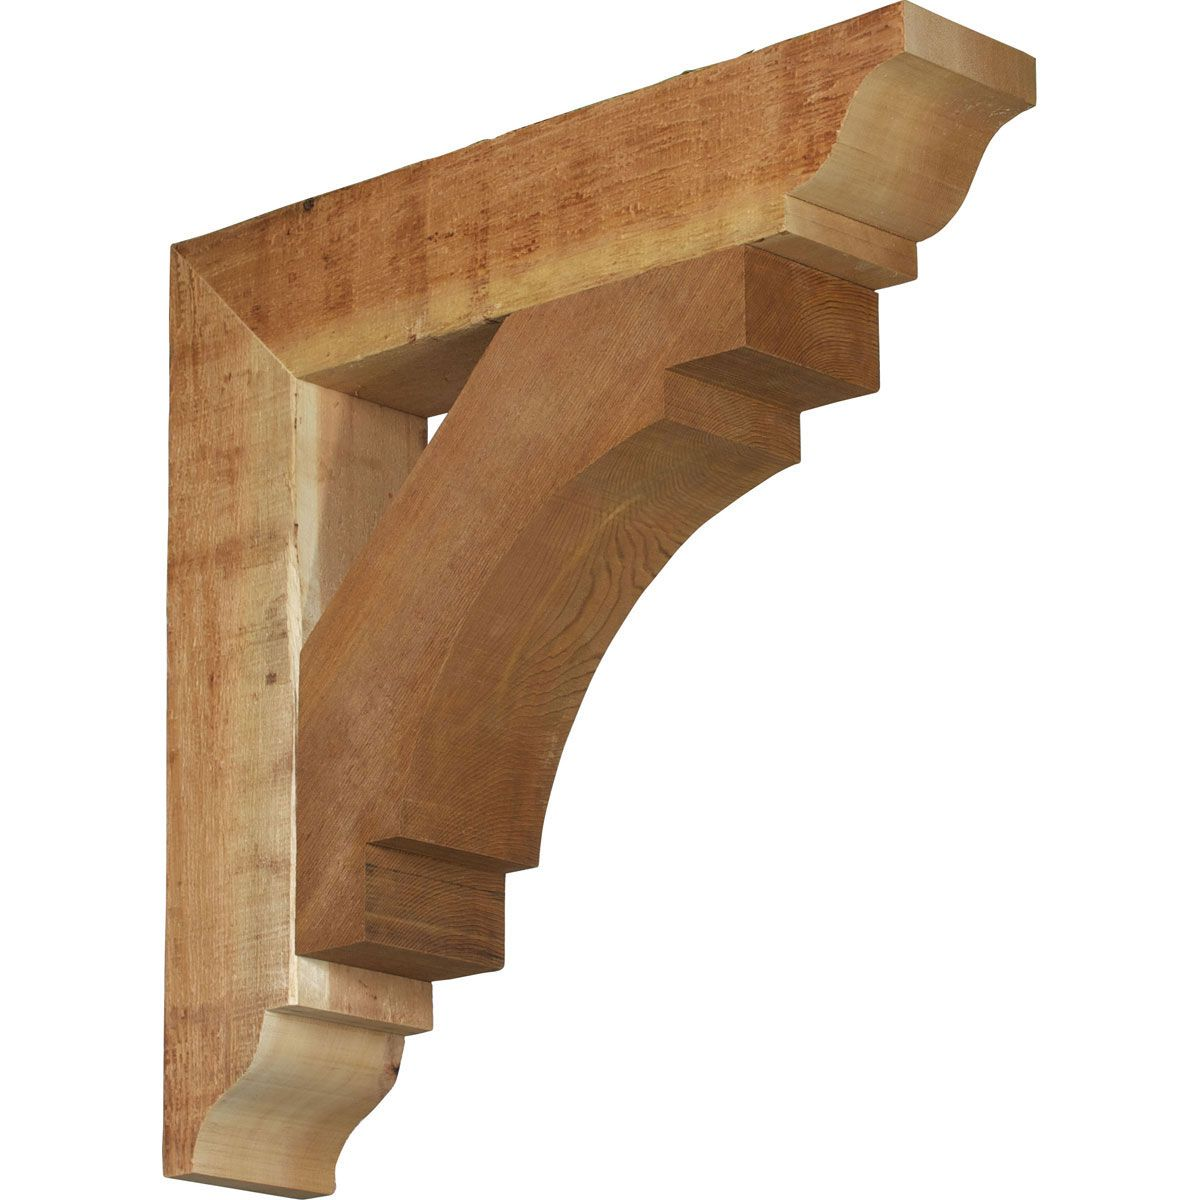 f decorative corbels countertops decoration decor and inspiration for ideas home appealing granite style